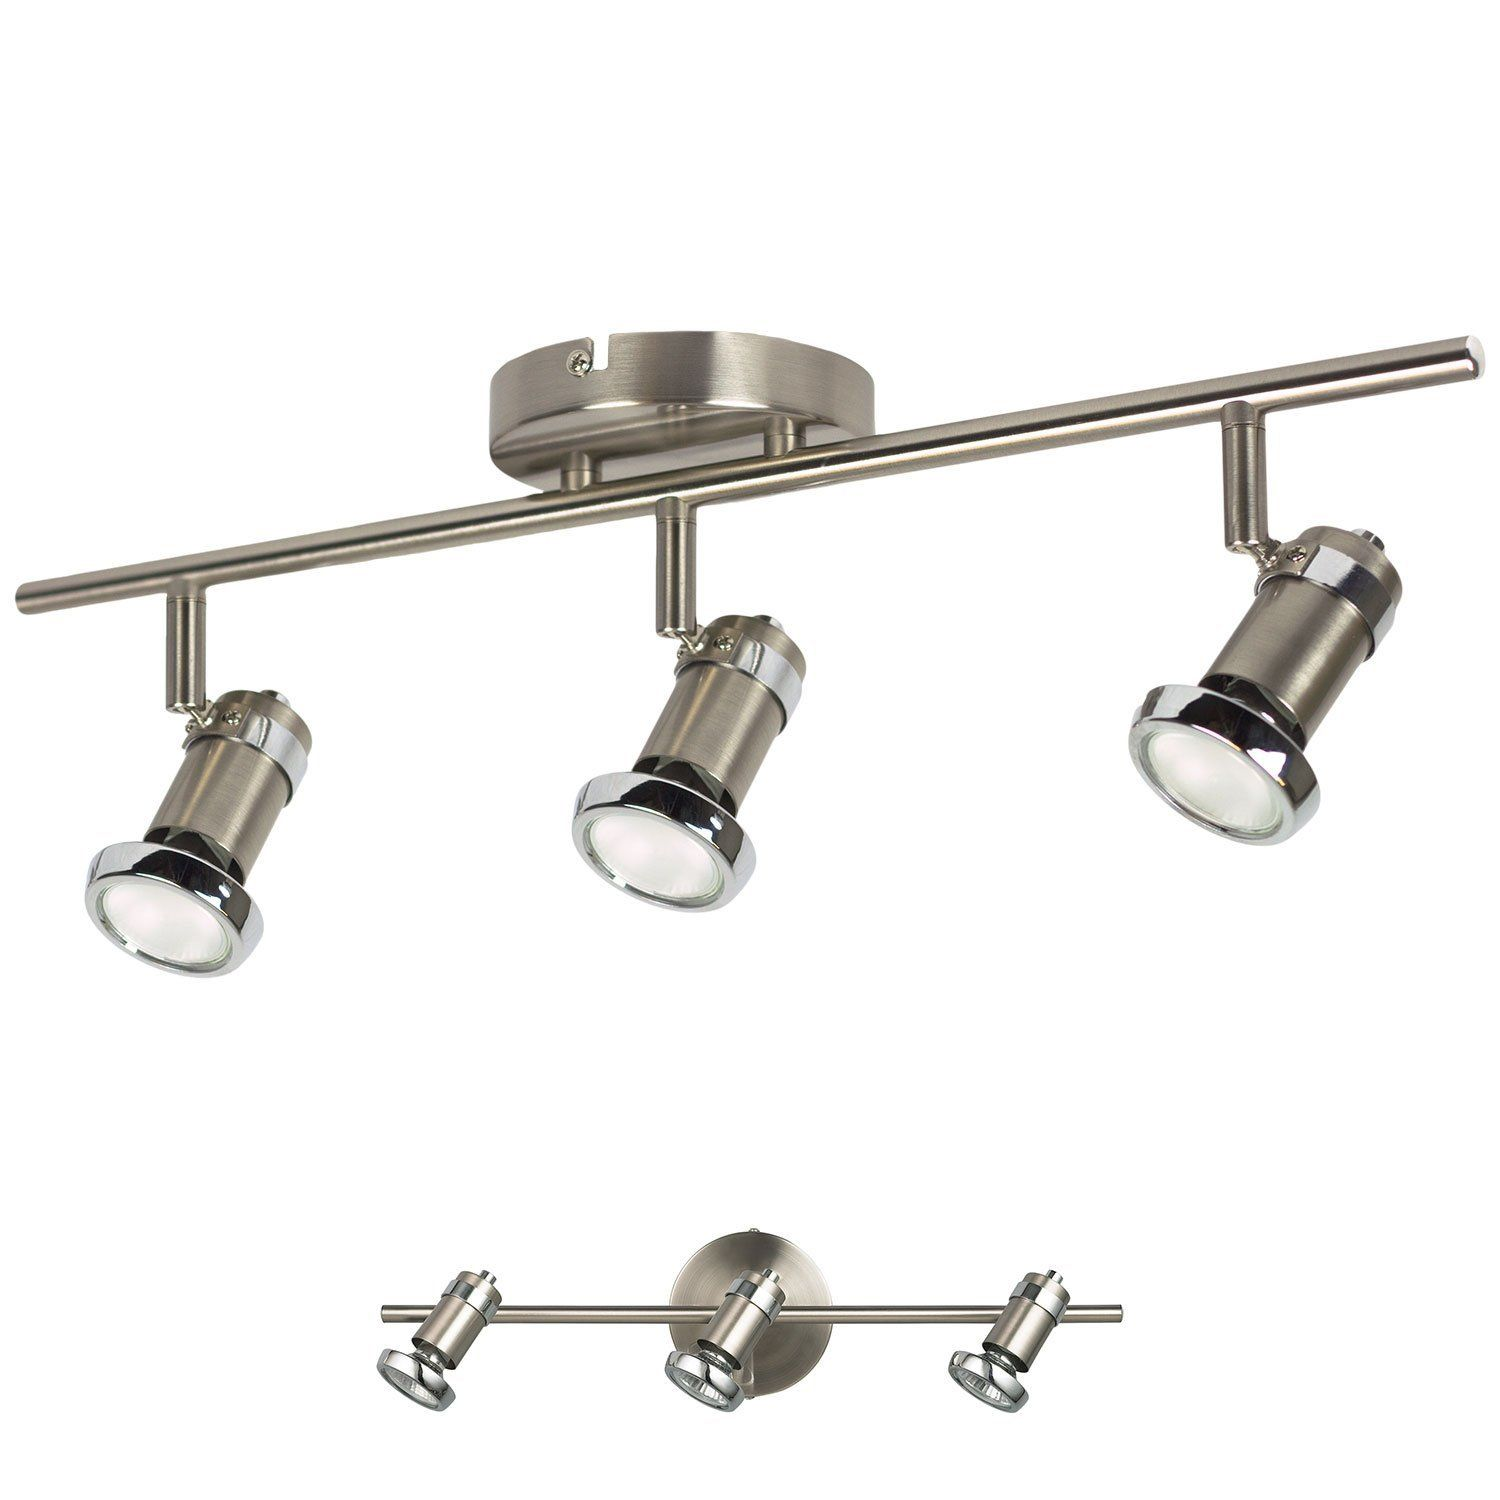 57 3 light track lighting adjustable wall or ceiling spot light 57 3 light track lighting adjustable wall or ceiling spot light fixture brushed nickel arubaitofo Image collections